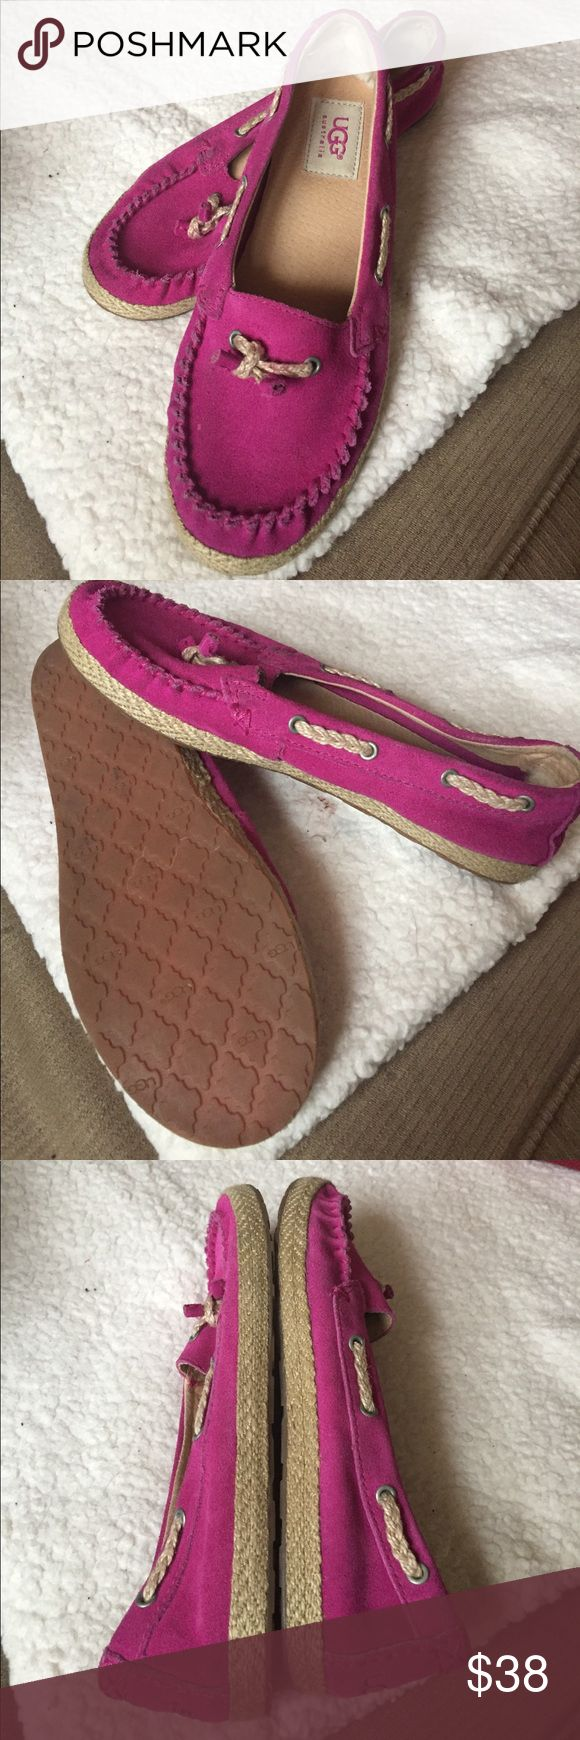 GIRLS PINK UGG SHOES SIZE 4 Shoes are in excellent condition and they are dark pink UGGS size 4 UGG Other